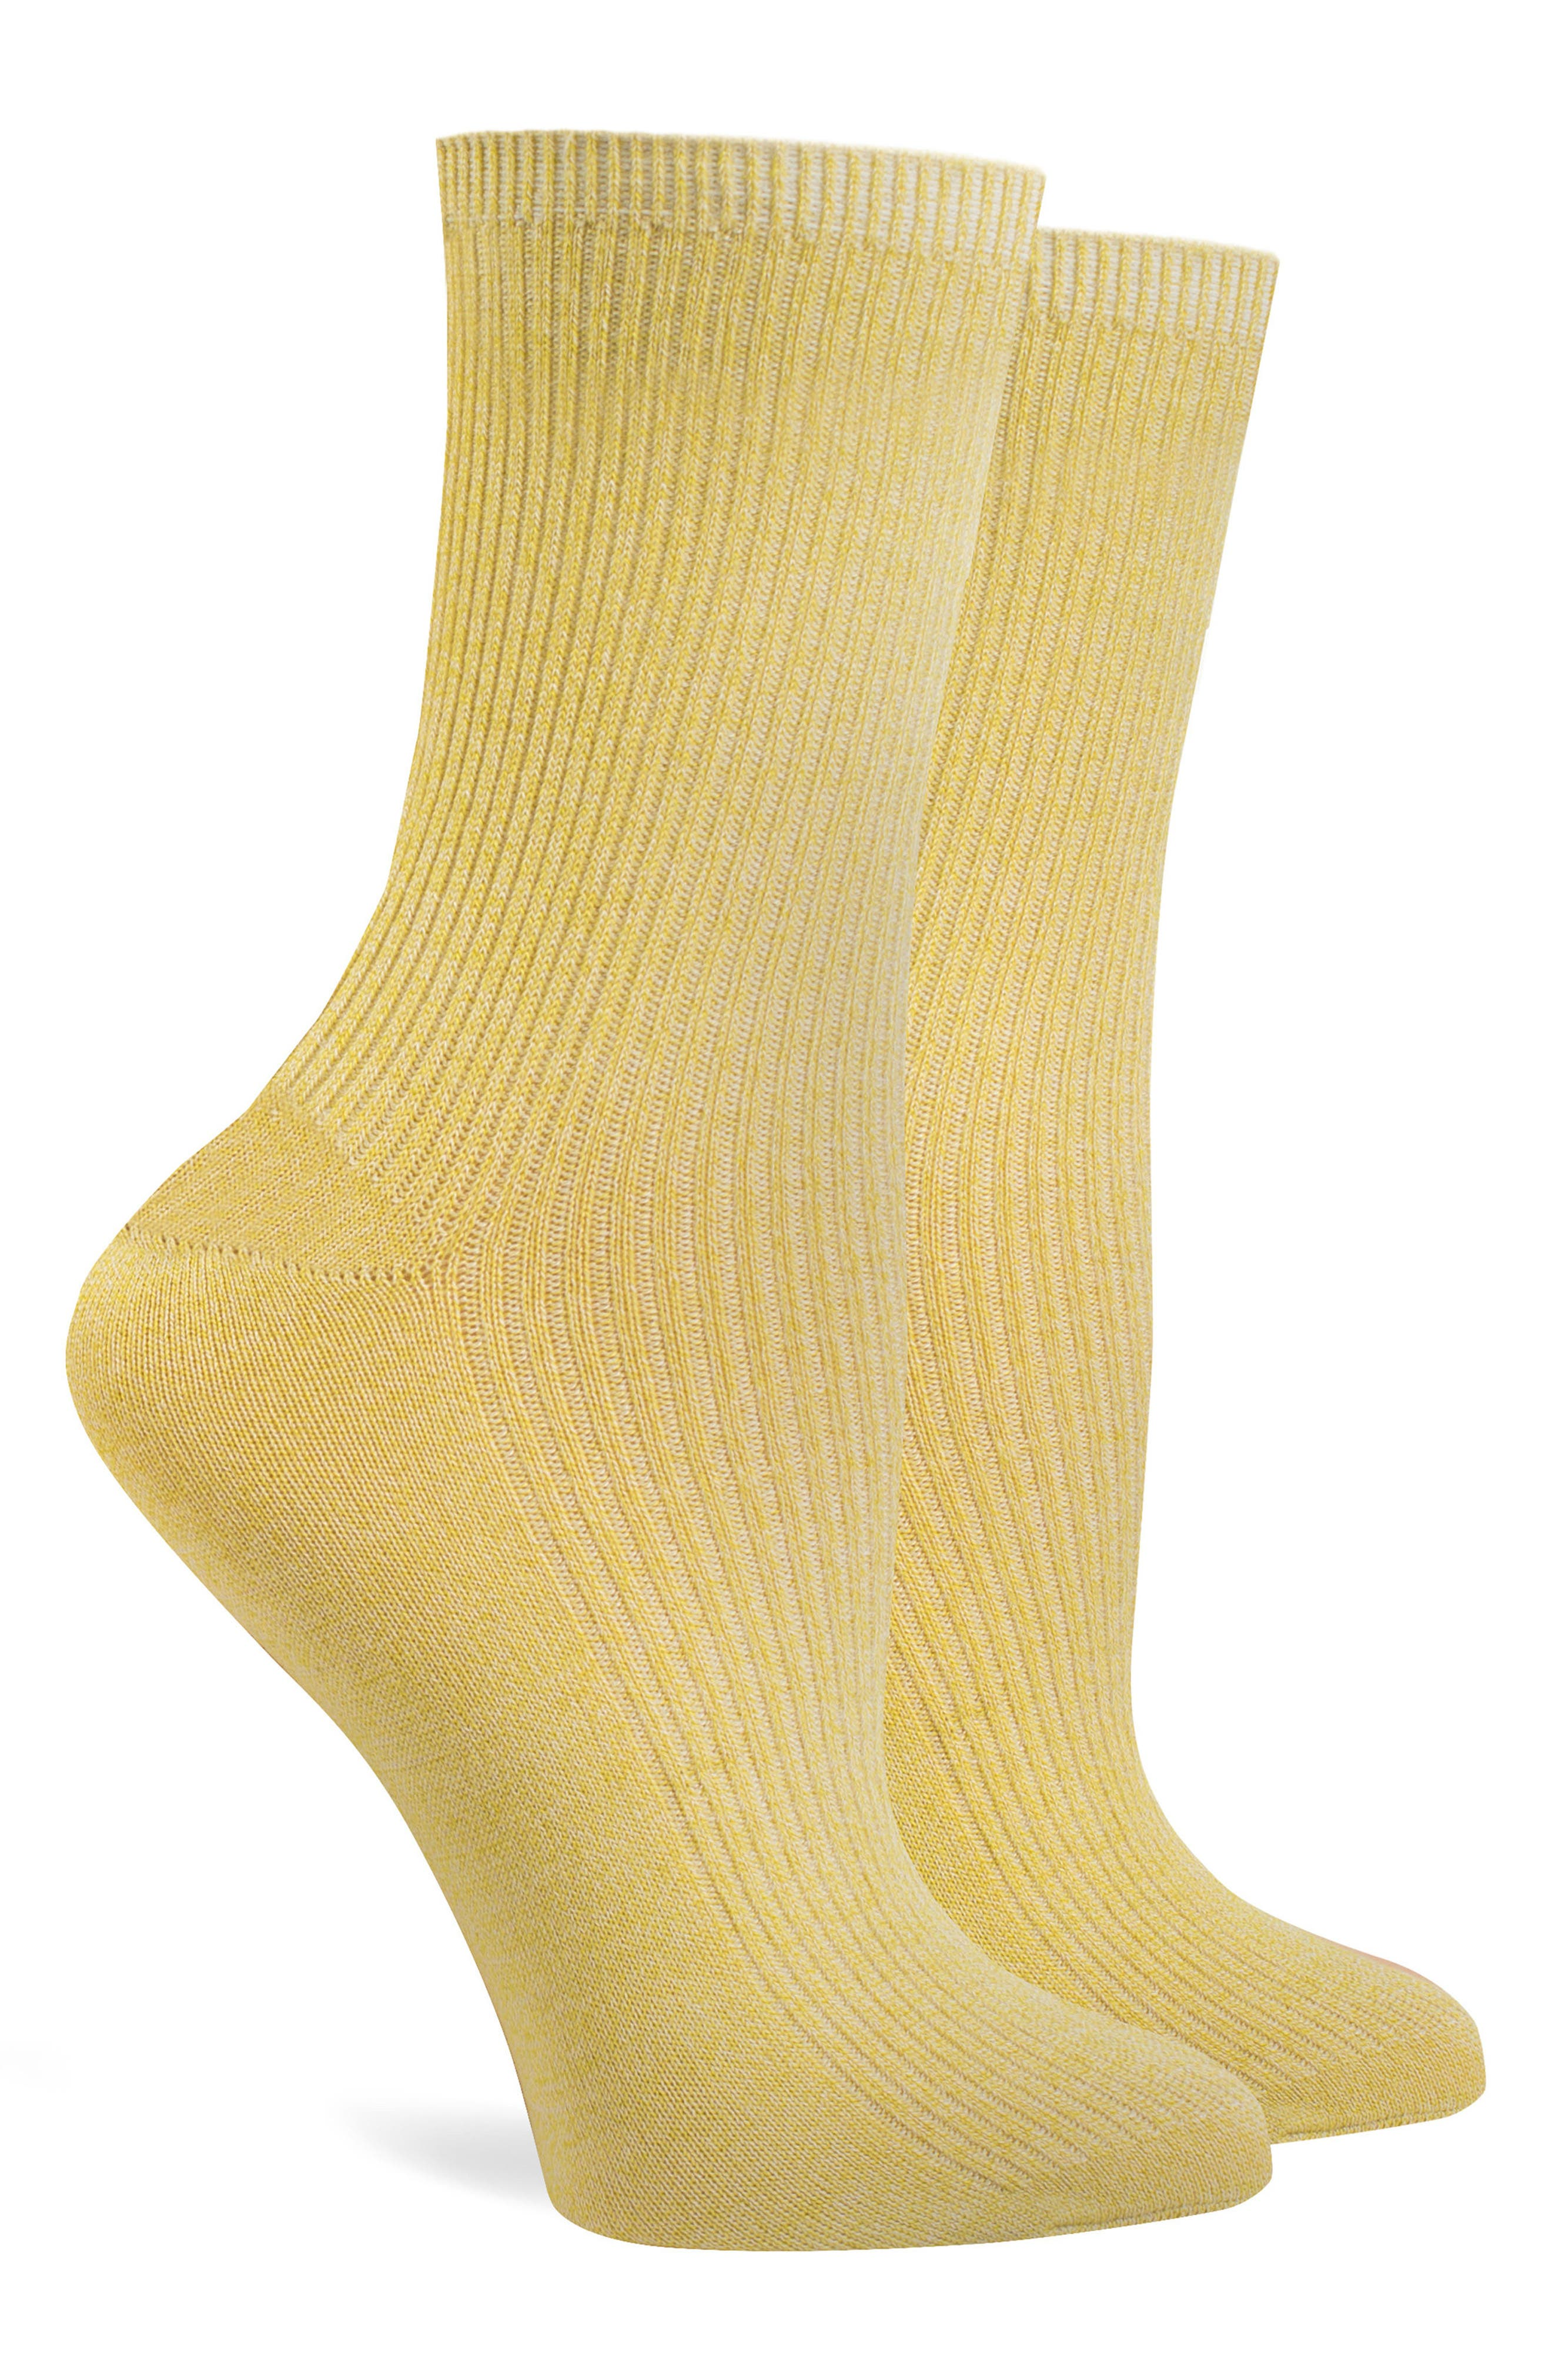 Nightingale Crew Socks,                             Alternate thumbnail 3, color,                             Green